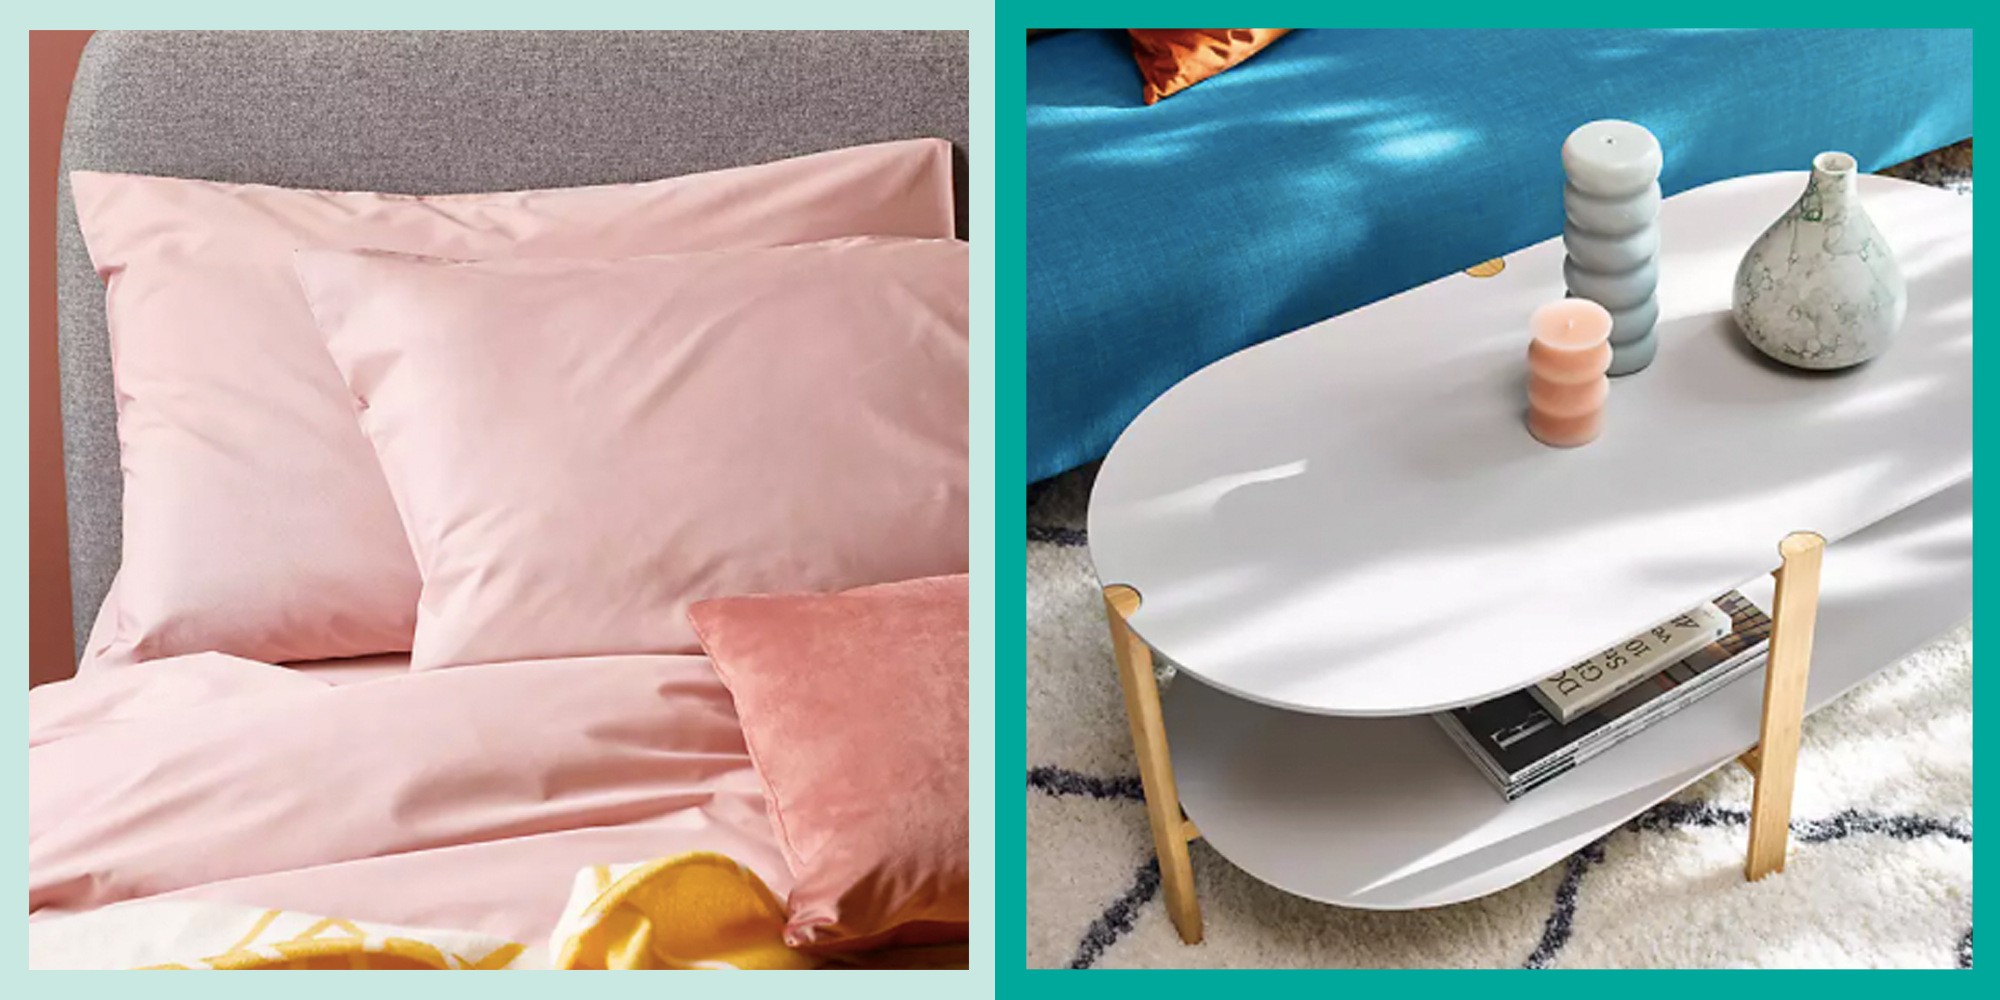 John Lewis launches affordable homeware range 'Anyday' and we love it all